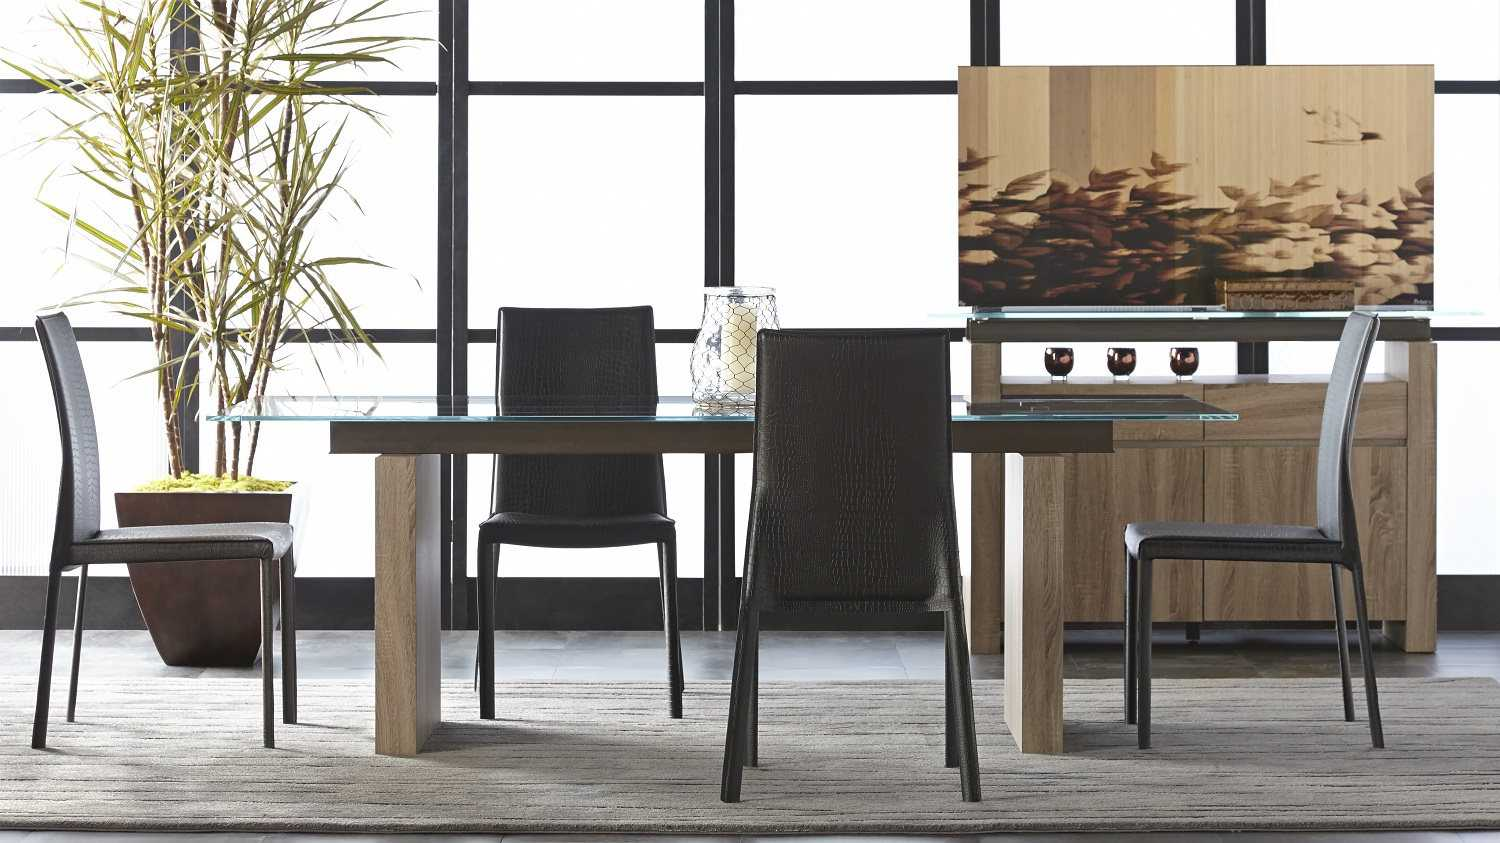 Star Furniture Dining Table: Star International Furniture Ritz Trave Tempered Super